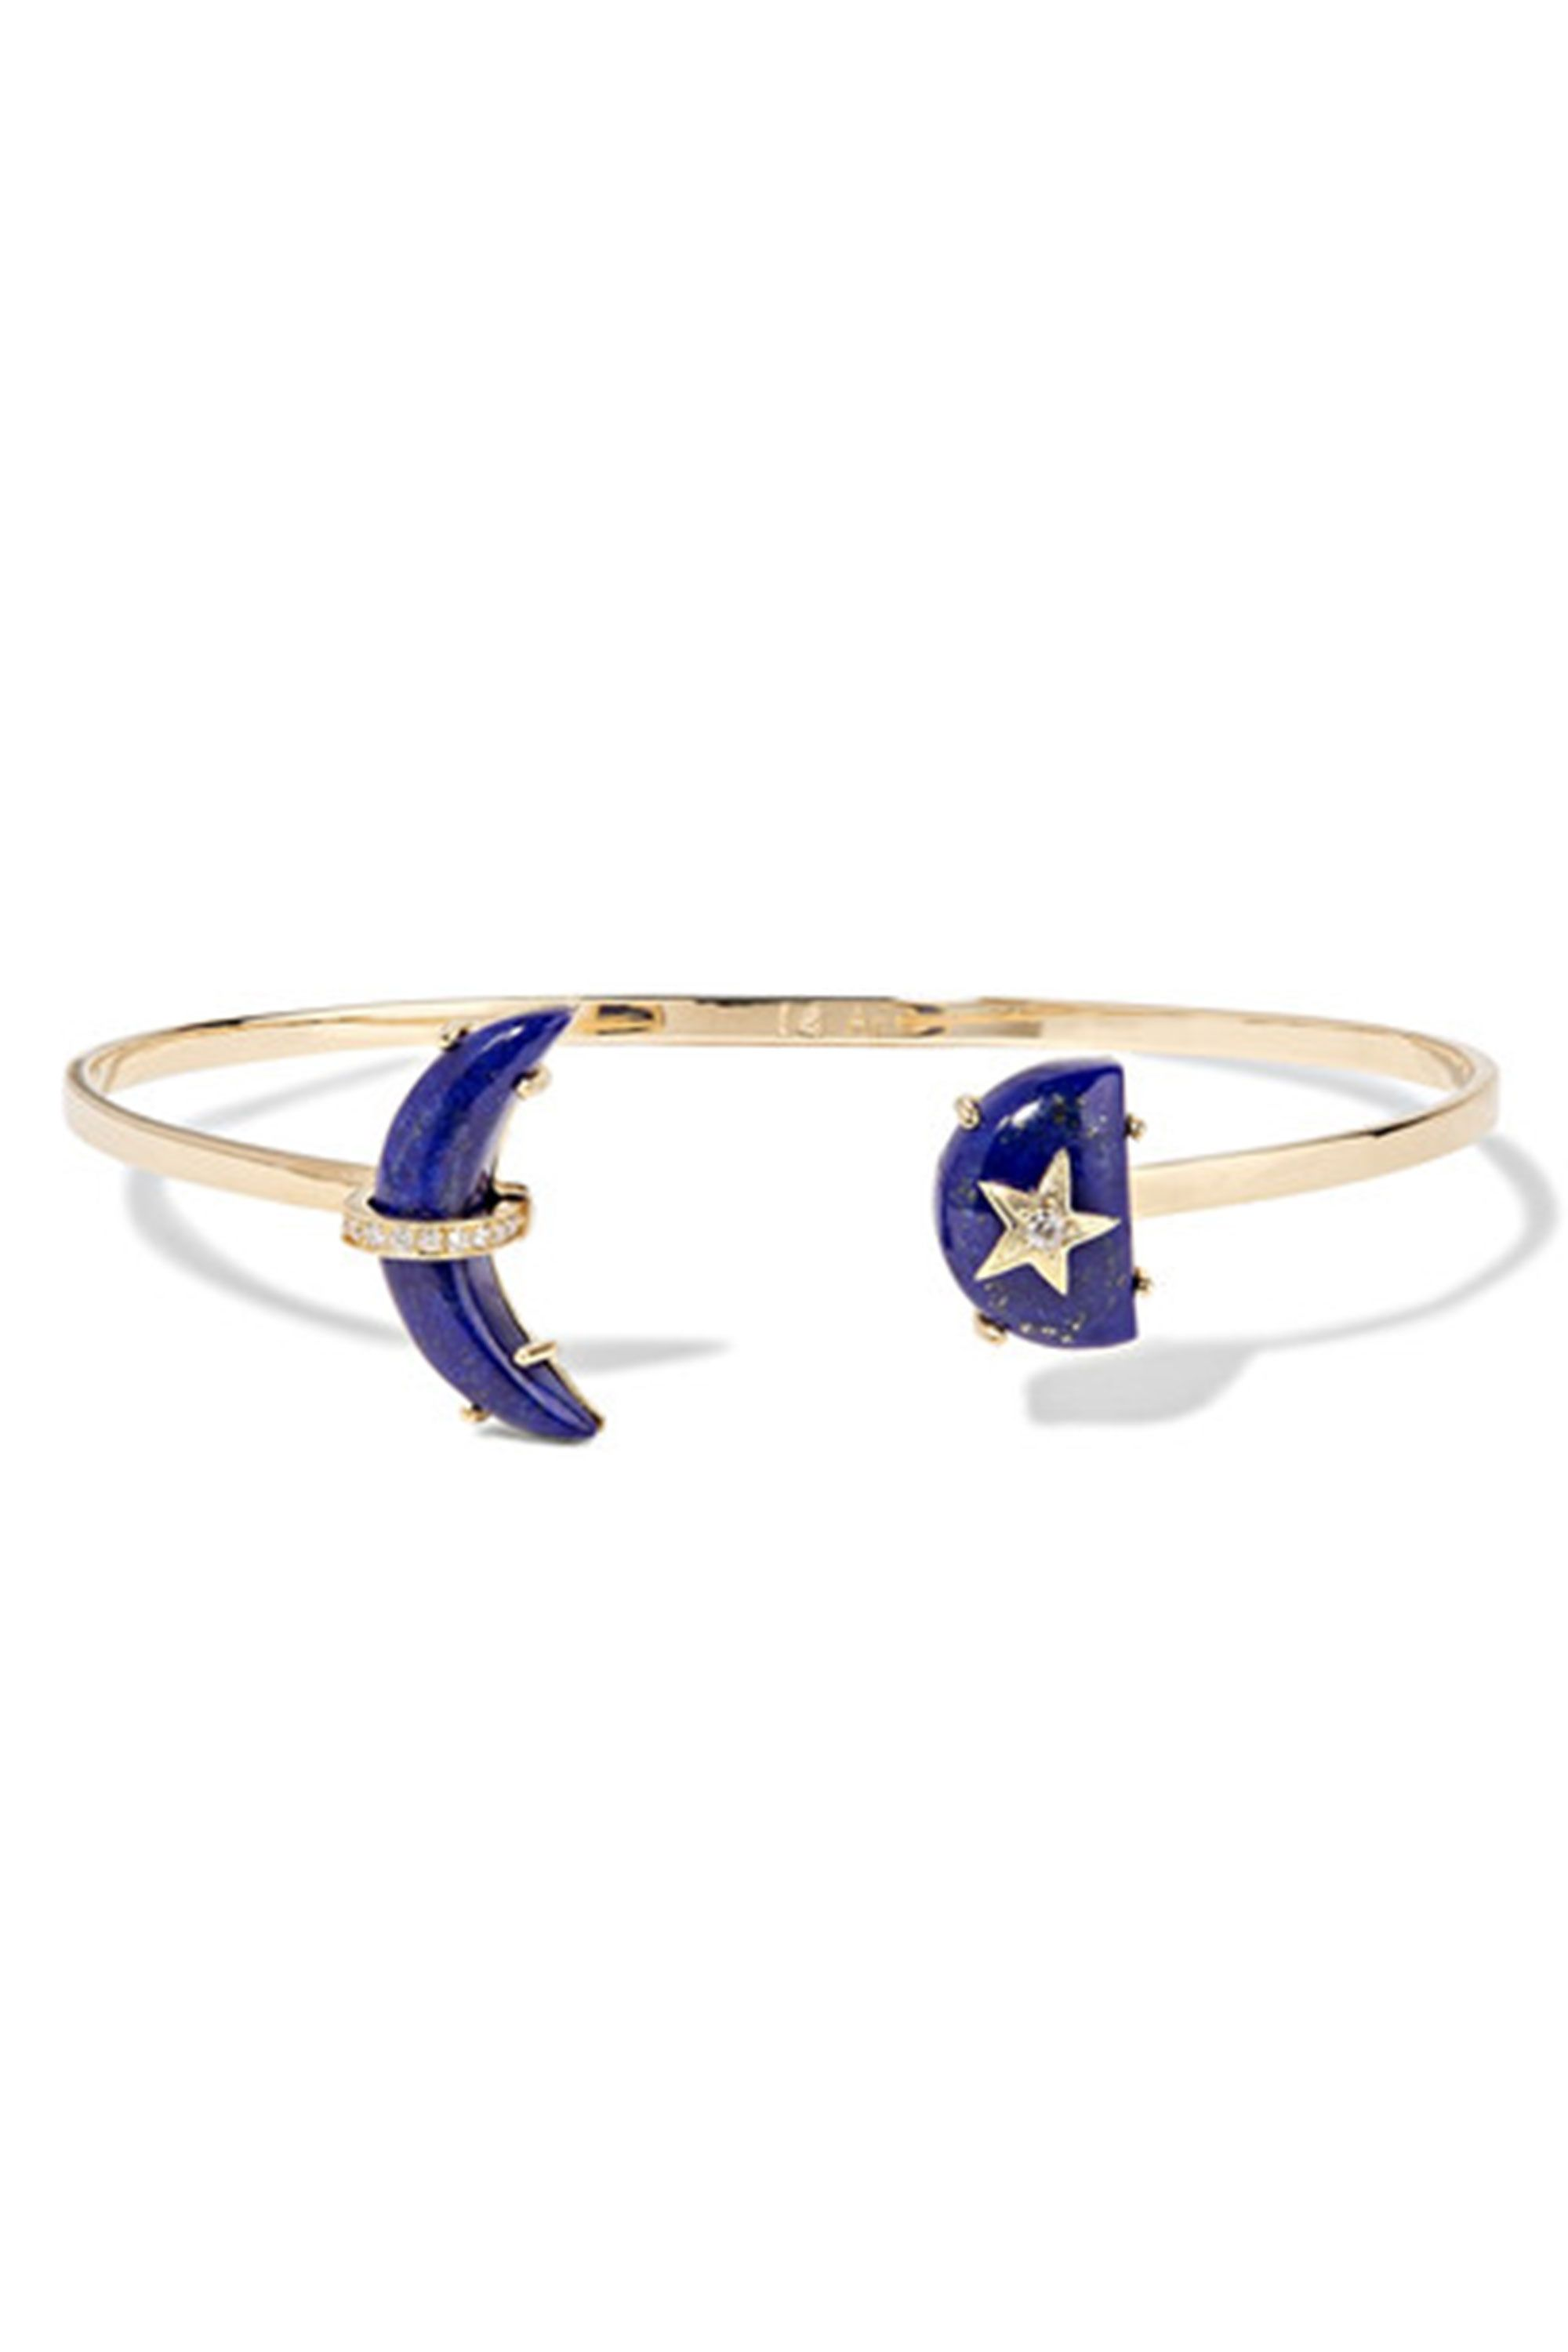 cartier jewellery news best bangles watches cuffs of bangle uk expensive chaumet the bracelets fashion love